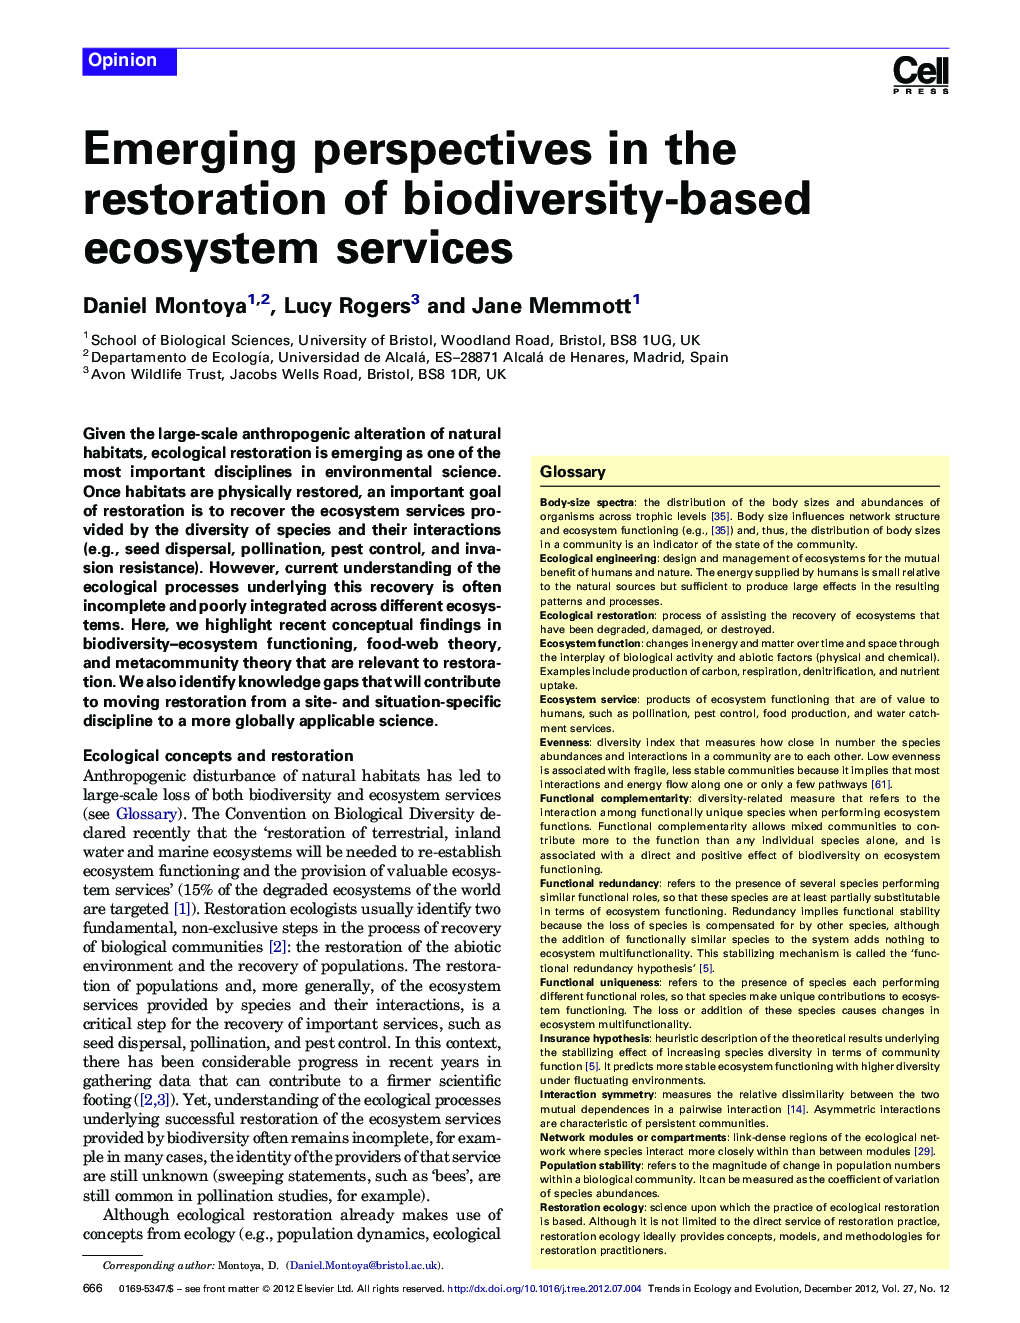 Emerging perspectives in the restoration of biodiversity-based ecosystem services